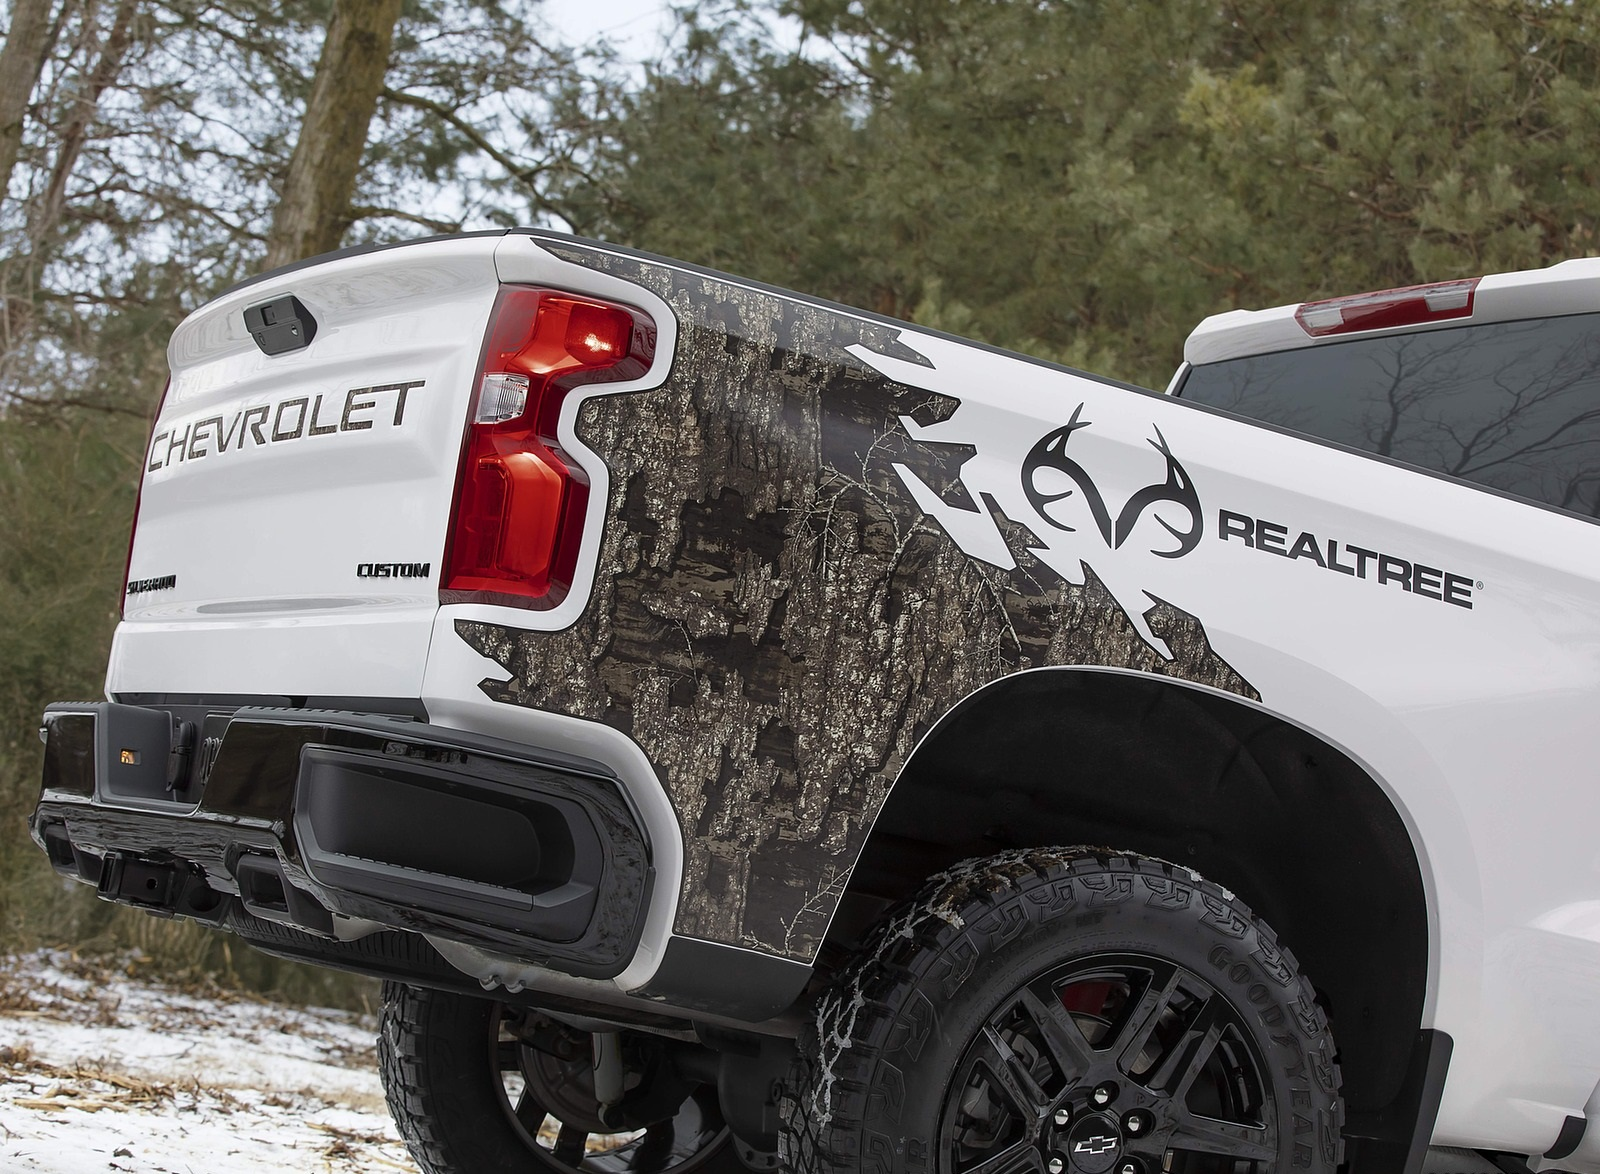 2021 Chevrolet Silverado Realtree Edition Detail Wallpapers (4)